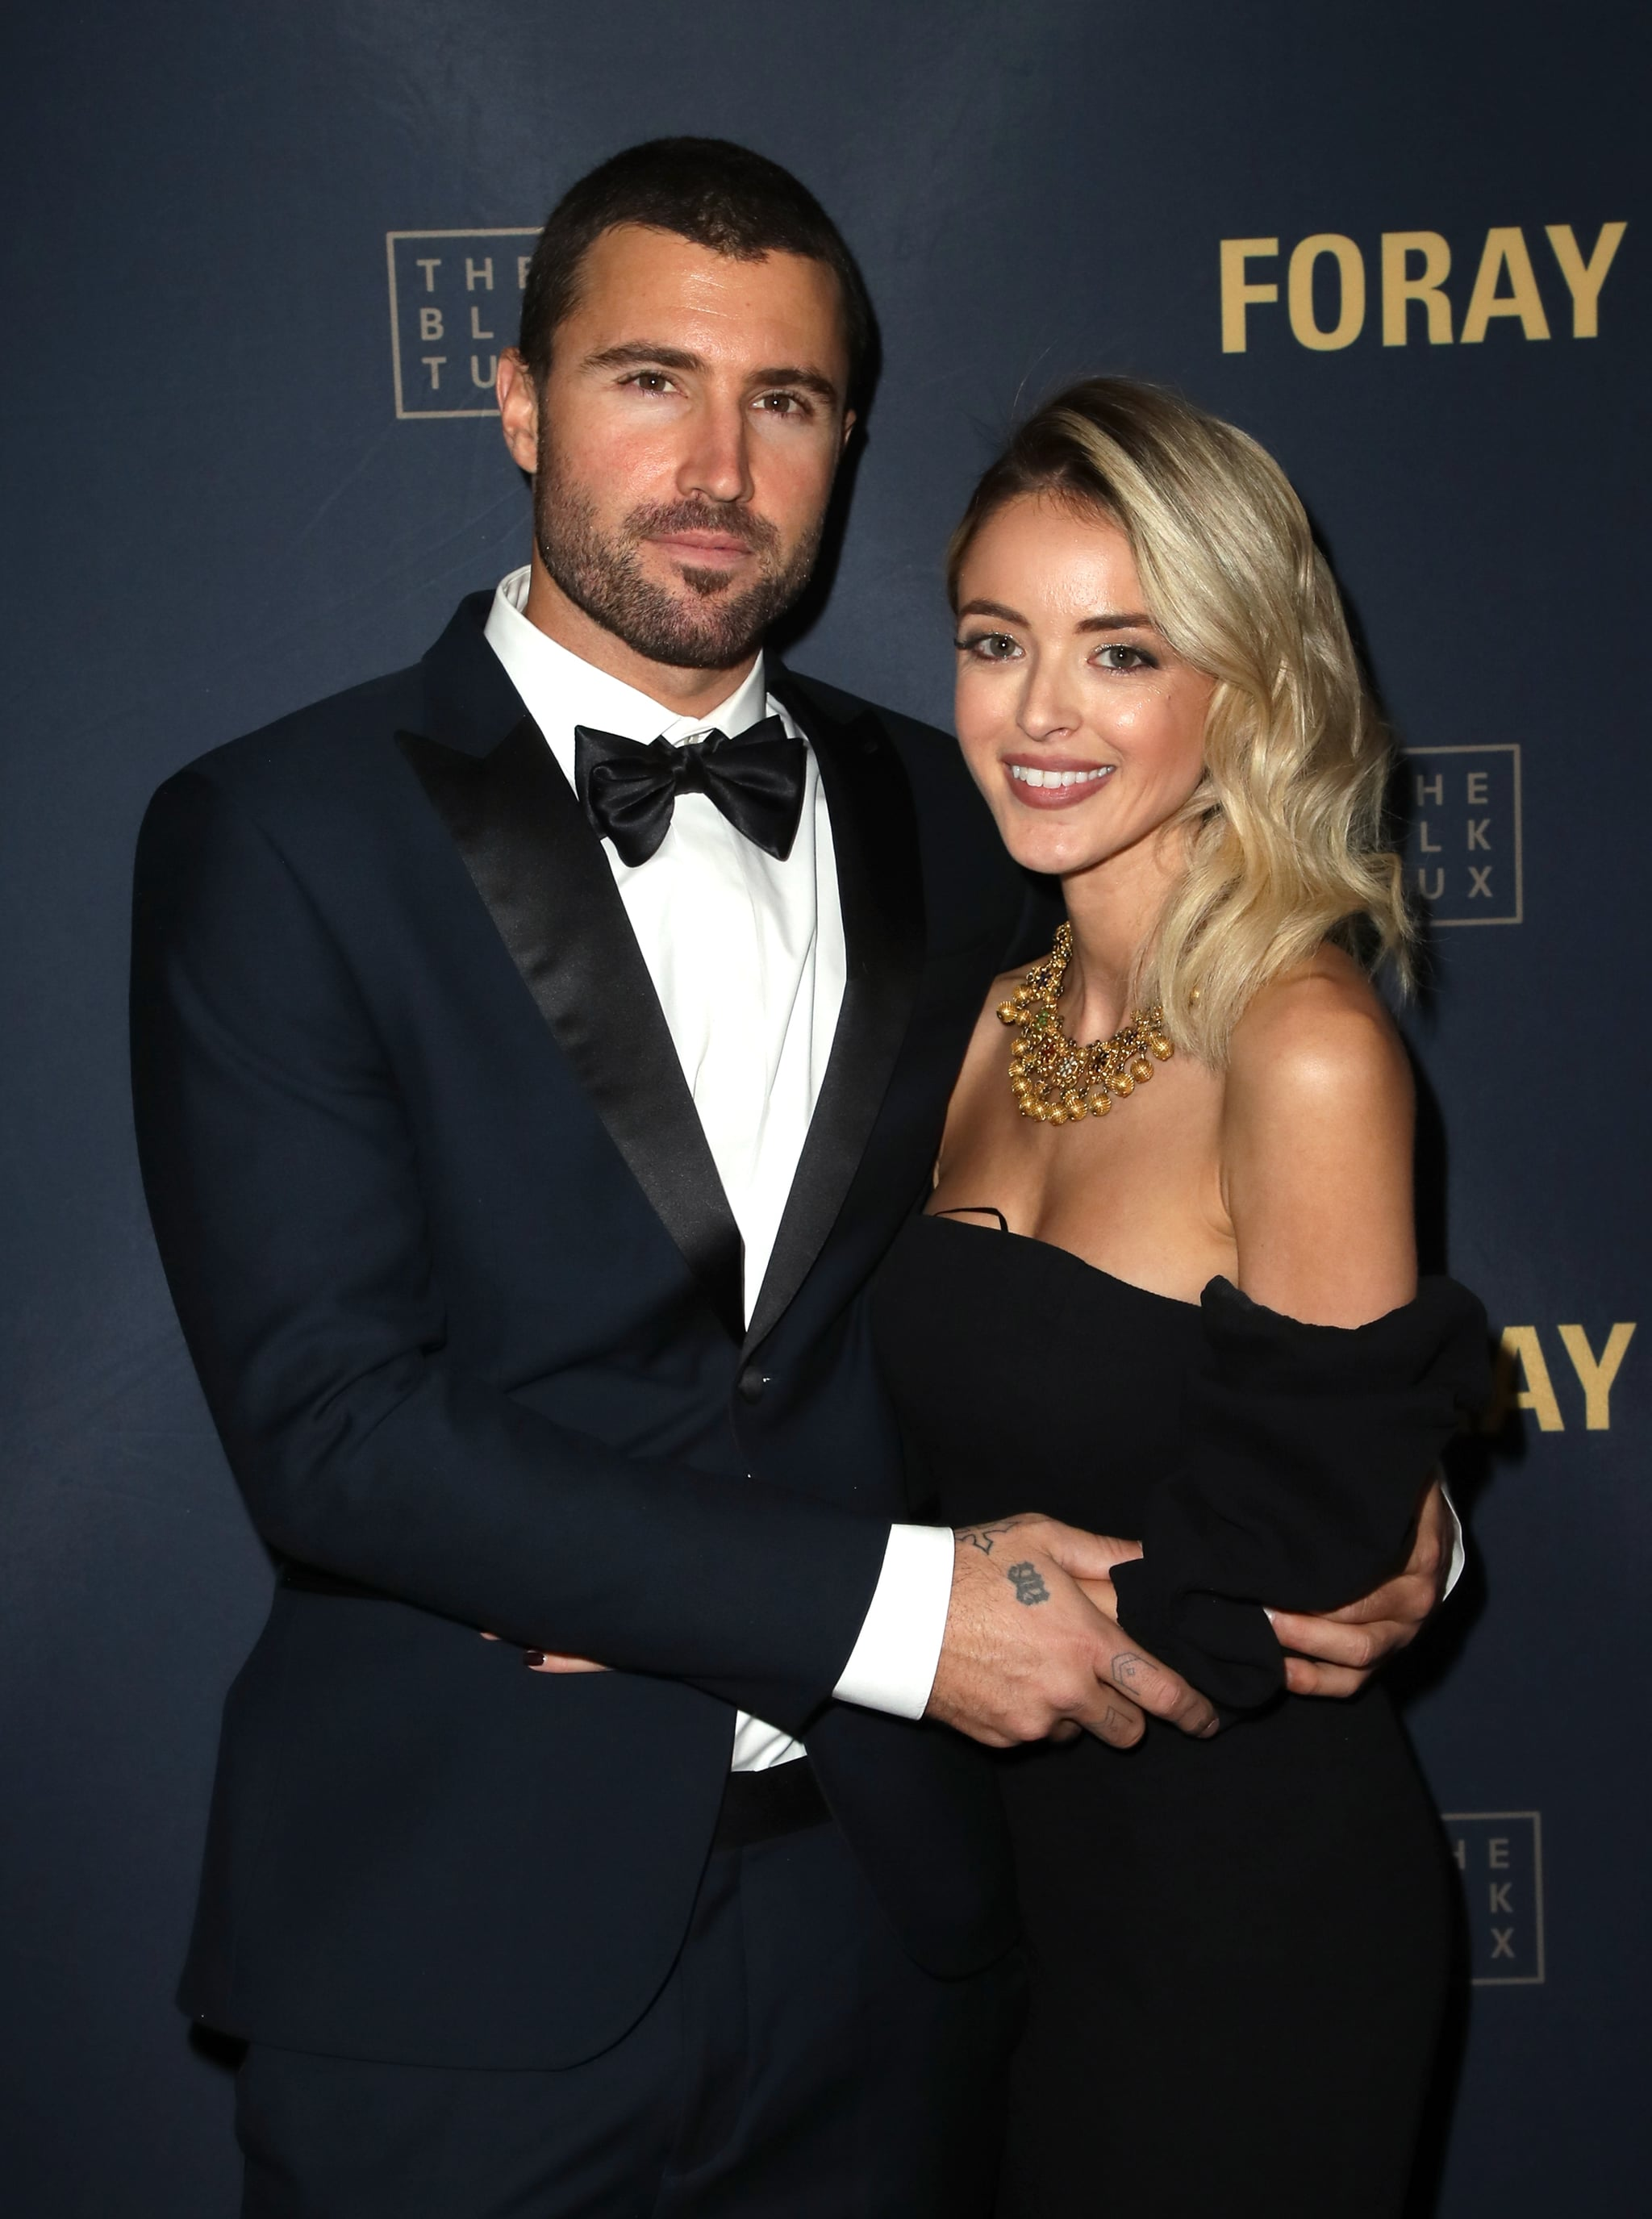 LOS ANGELES, CA - DECEMBER 12:  Television personality Brody Jenner (L) and Kaitlynn Carter attend FORAY Collective and The Black Tux Host Holiday Gala on December 12, 2017 in Los Angeles, California.  (Photo by David Livingston/Getty Images)